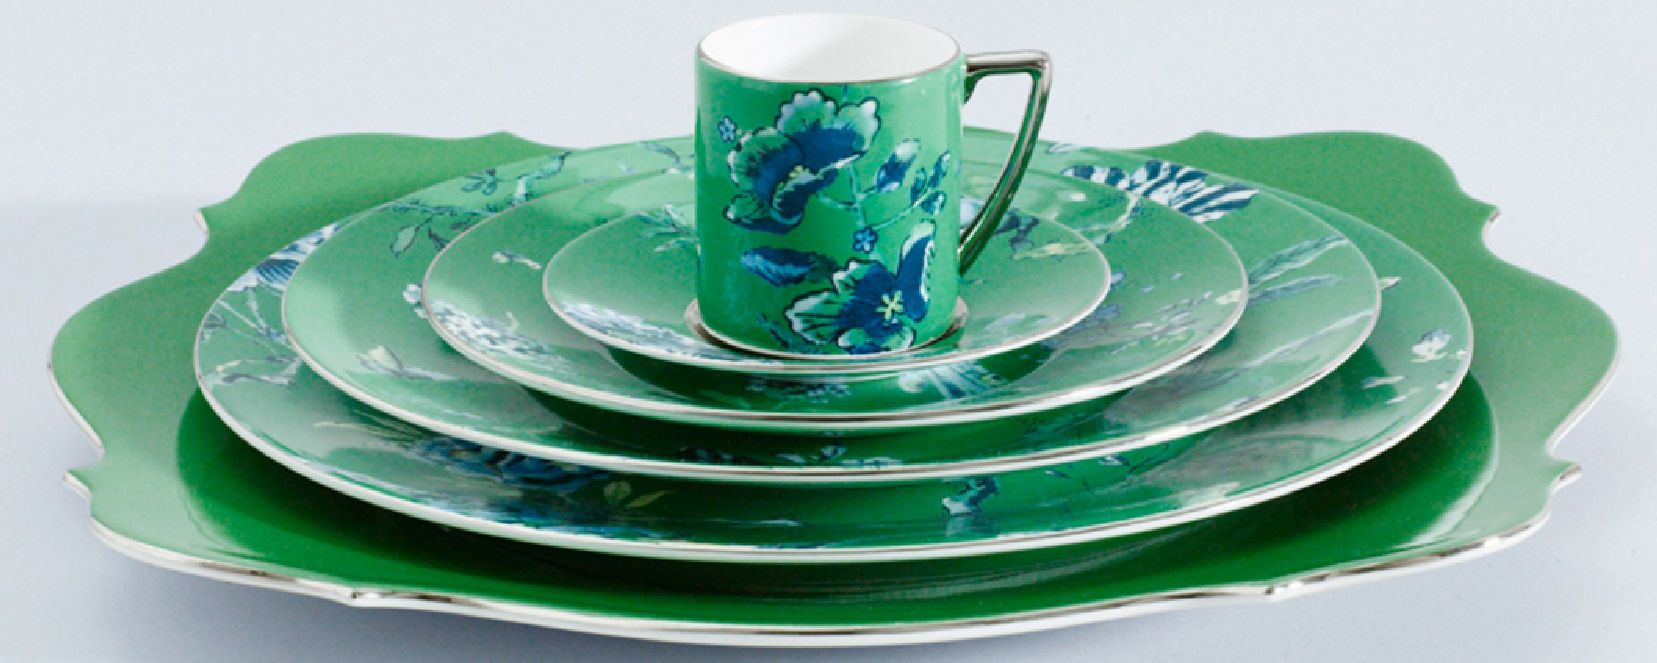 chinoiserie-green-jasper-conran-categorie-mica-azay